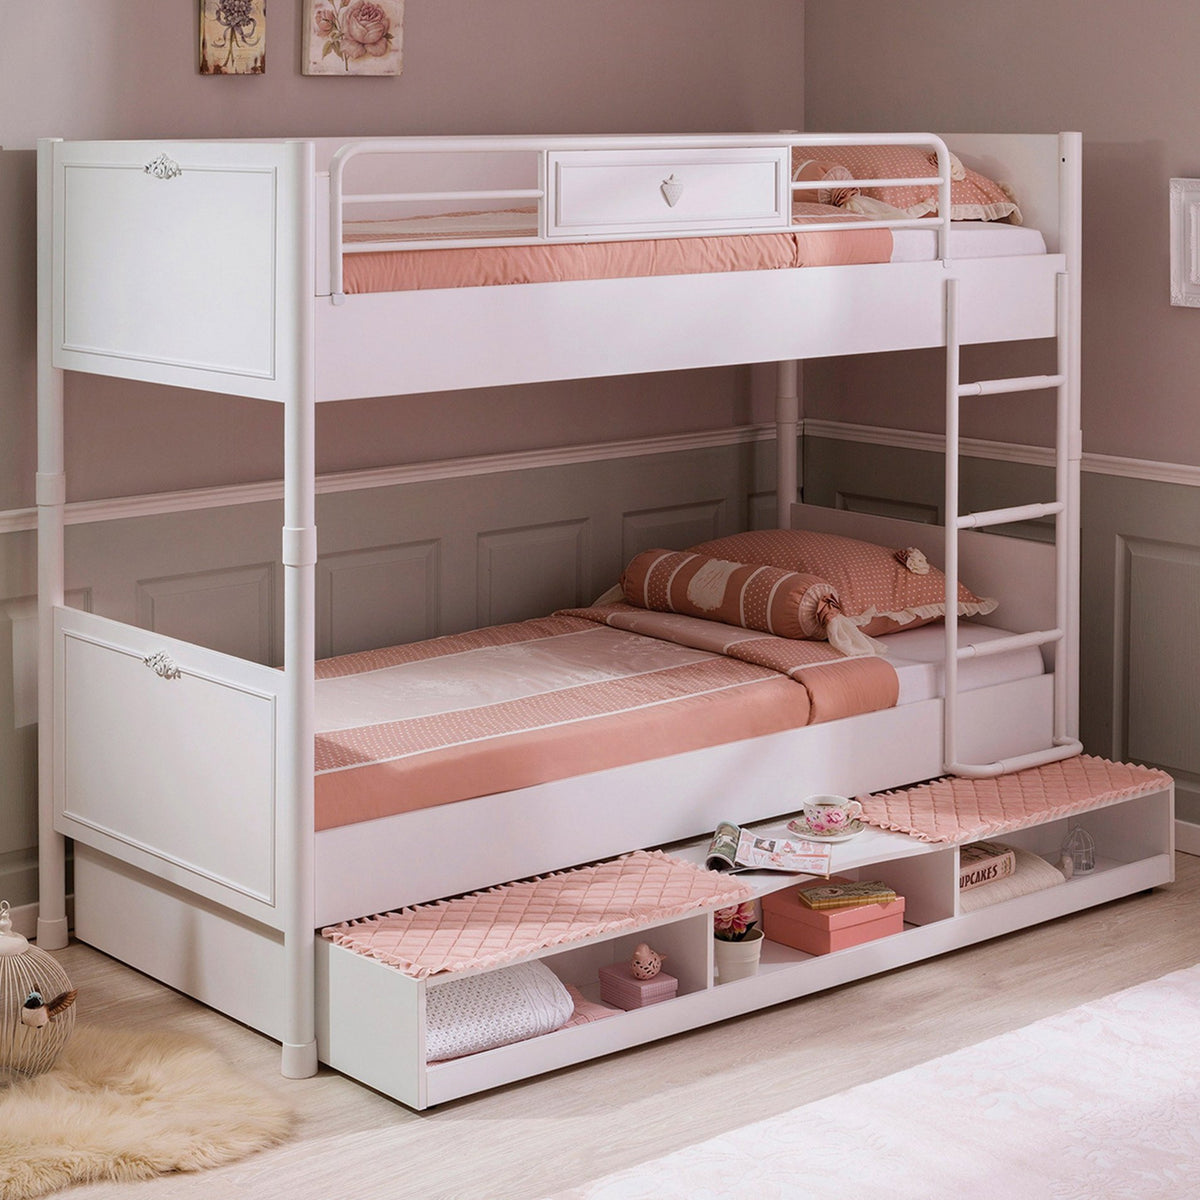 Cilek Romantica Bunk Bed 90x200 Cm With Pull Out Options